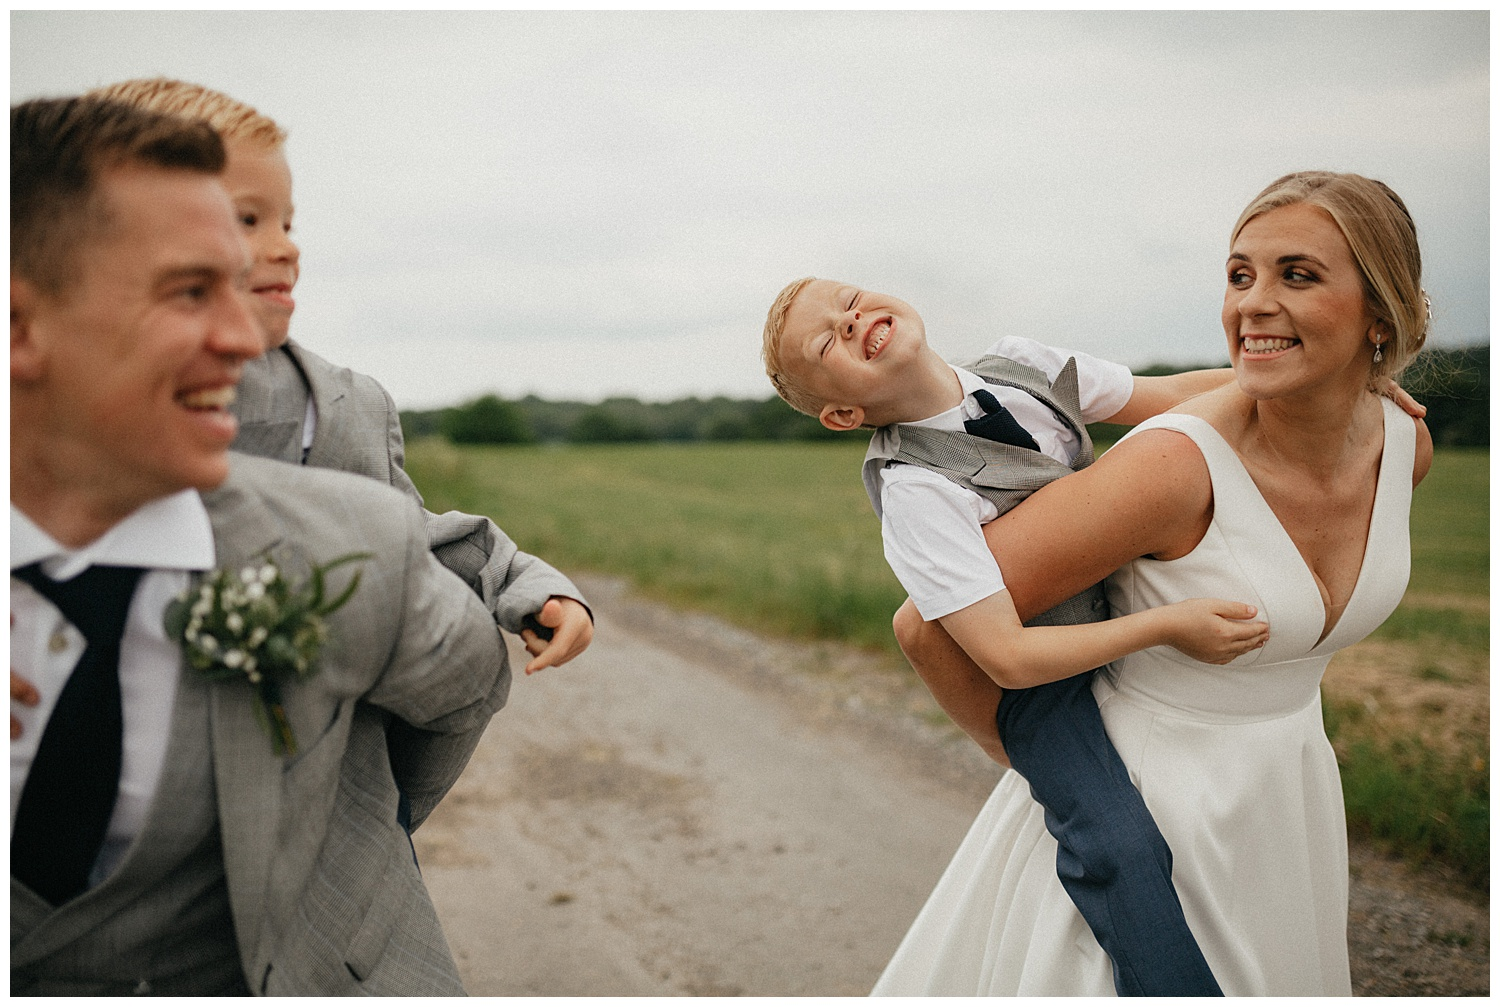 Weddings-at-Crondon-Park-bride-and-groom-carry-their-kids-and-laugh